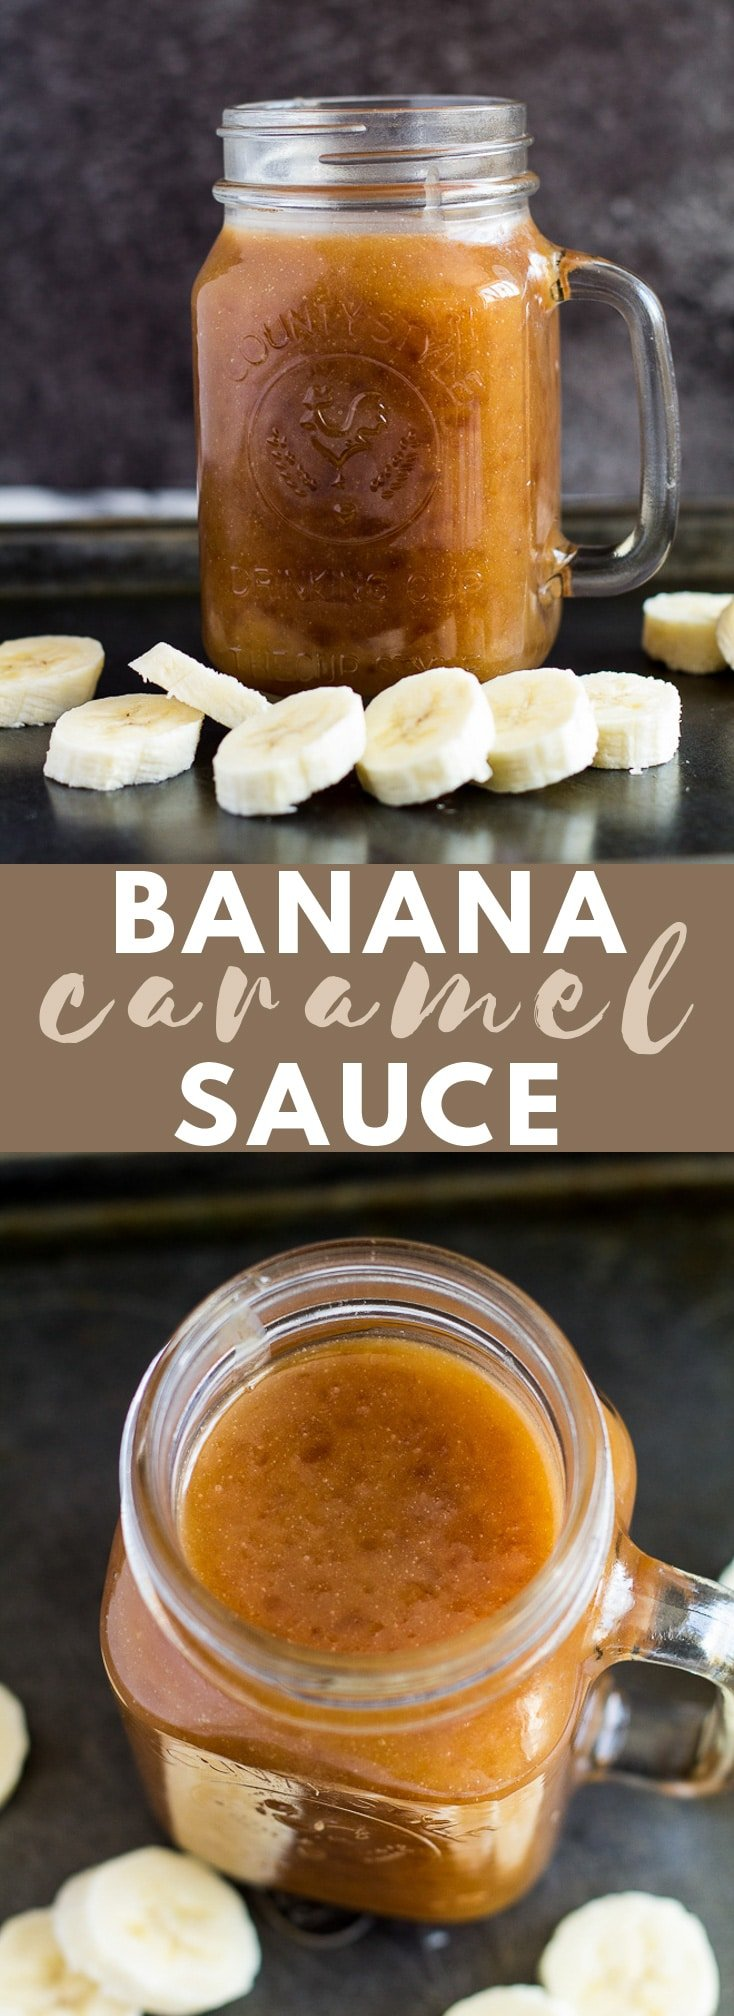 Banana Caramel Sauce - This deliciously sweet caramel sauce is made with just 5 simple ingredients, and is loaded with banana flavour! #banana #caramelsauce #bananarecipes